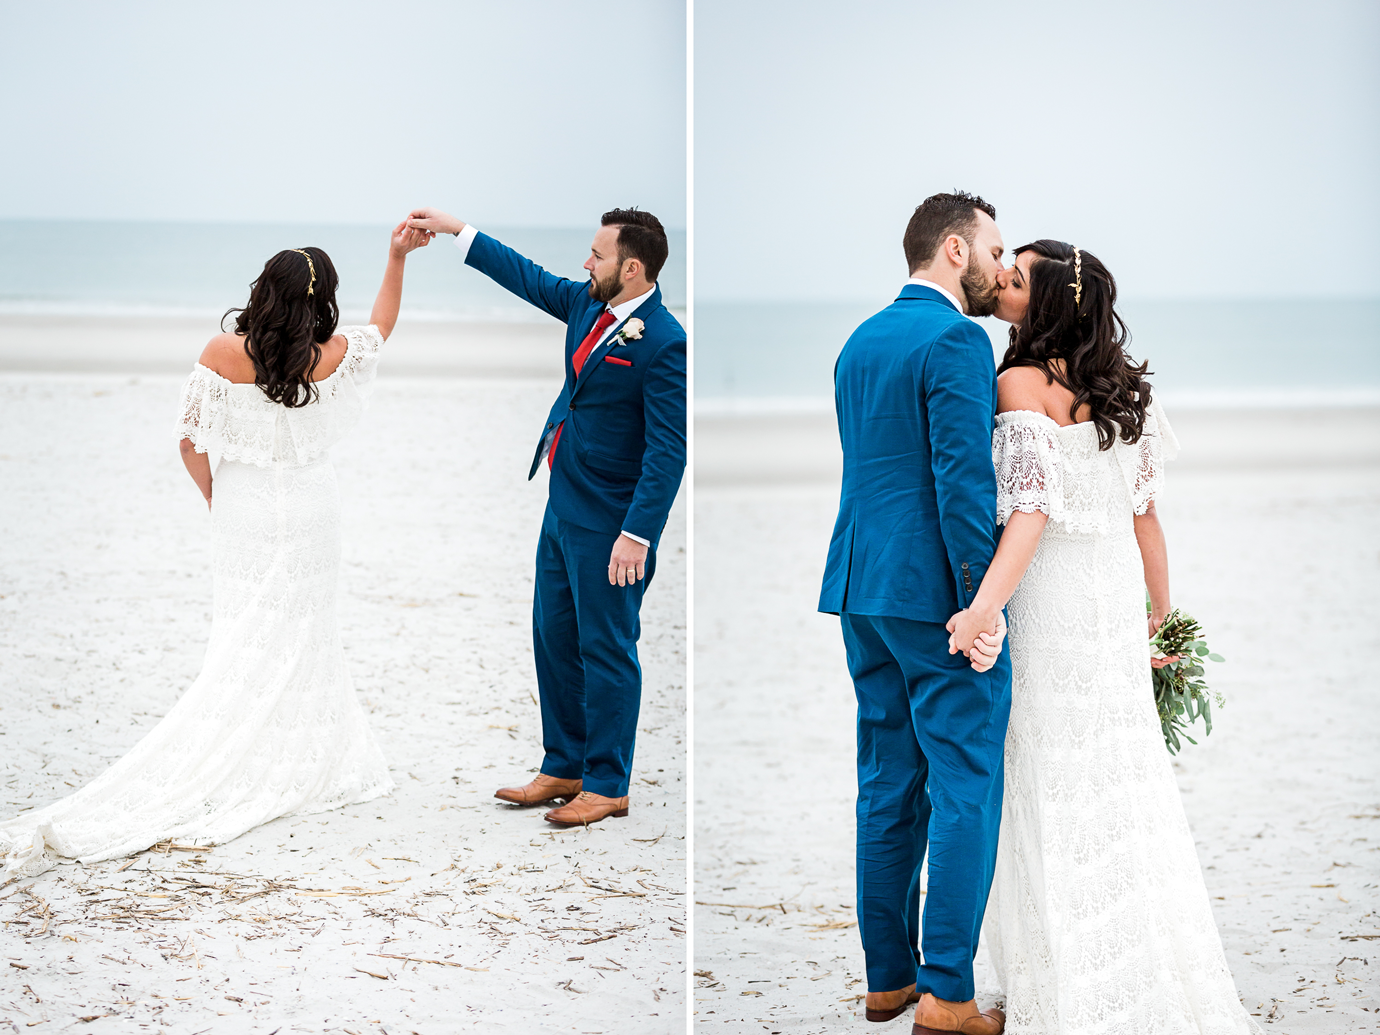 sweet bride and groom picture ideas at the beach